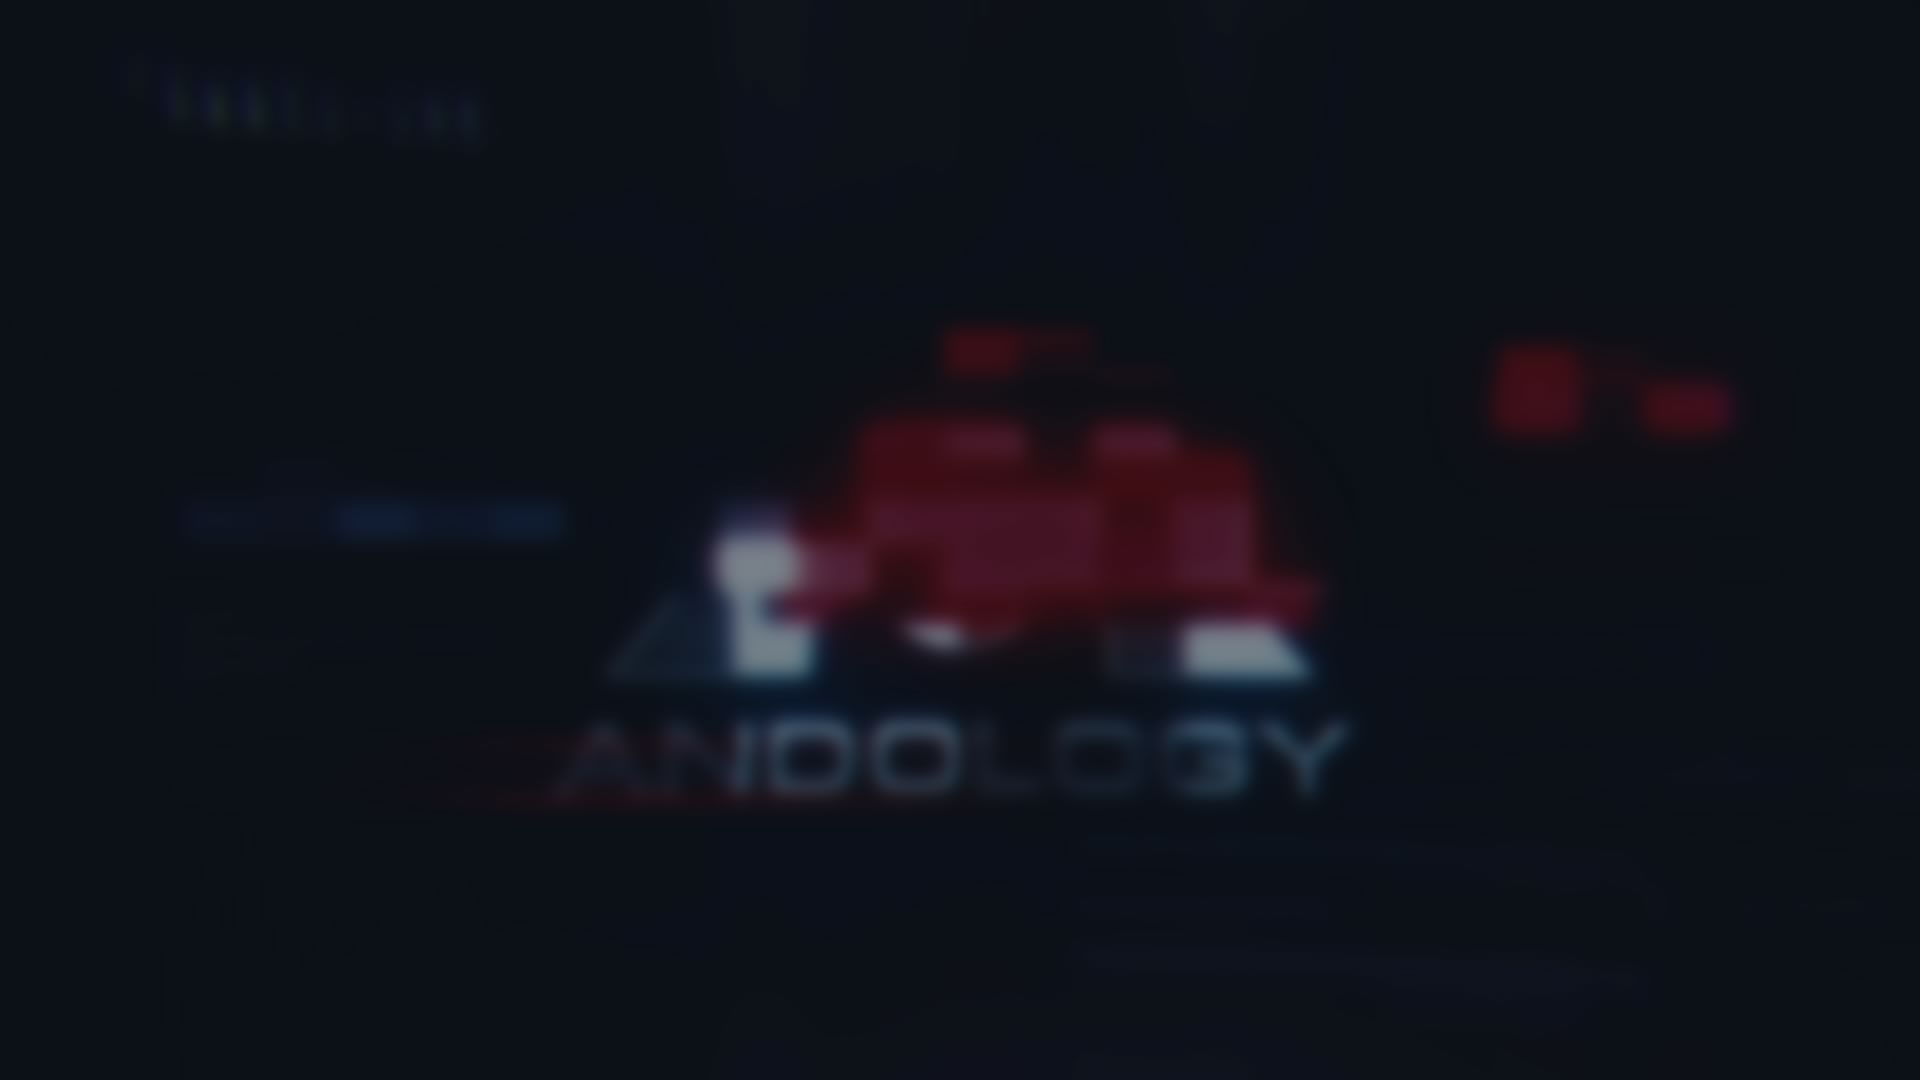 Andology Corporation – Logo Intro Animation V4 (2014) – Short